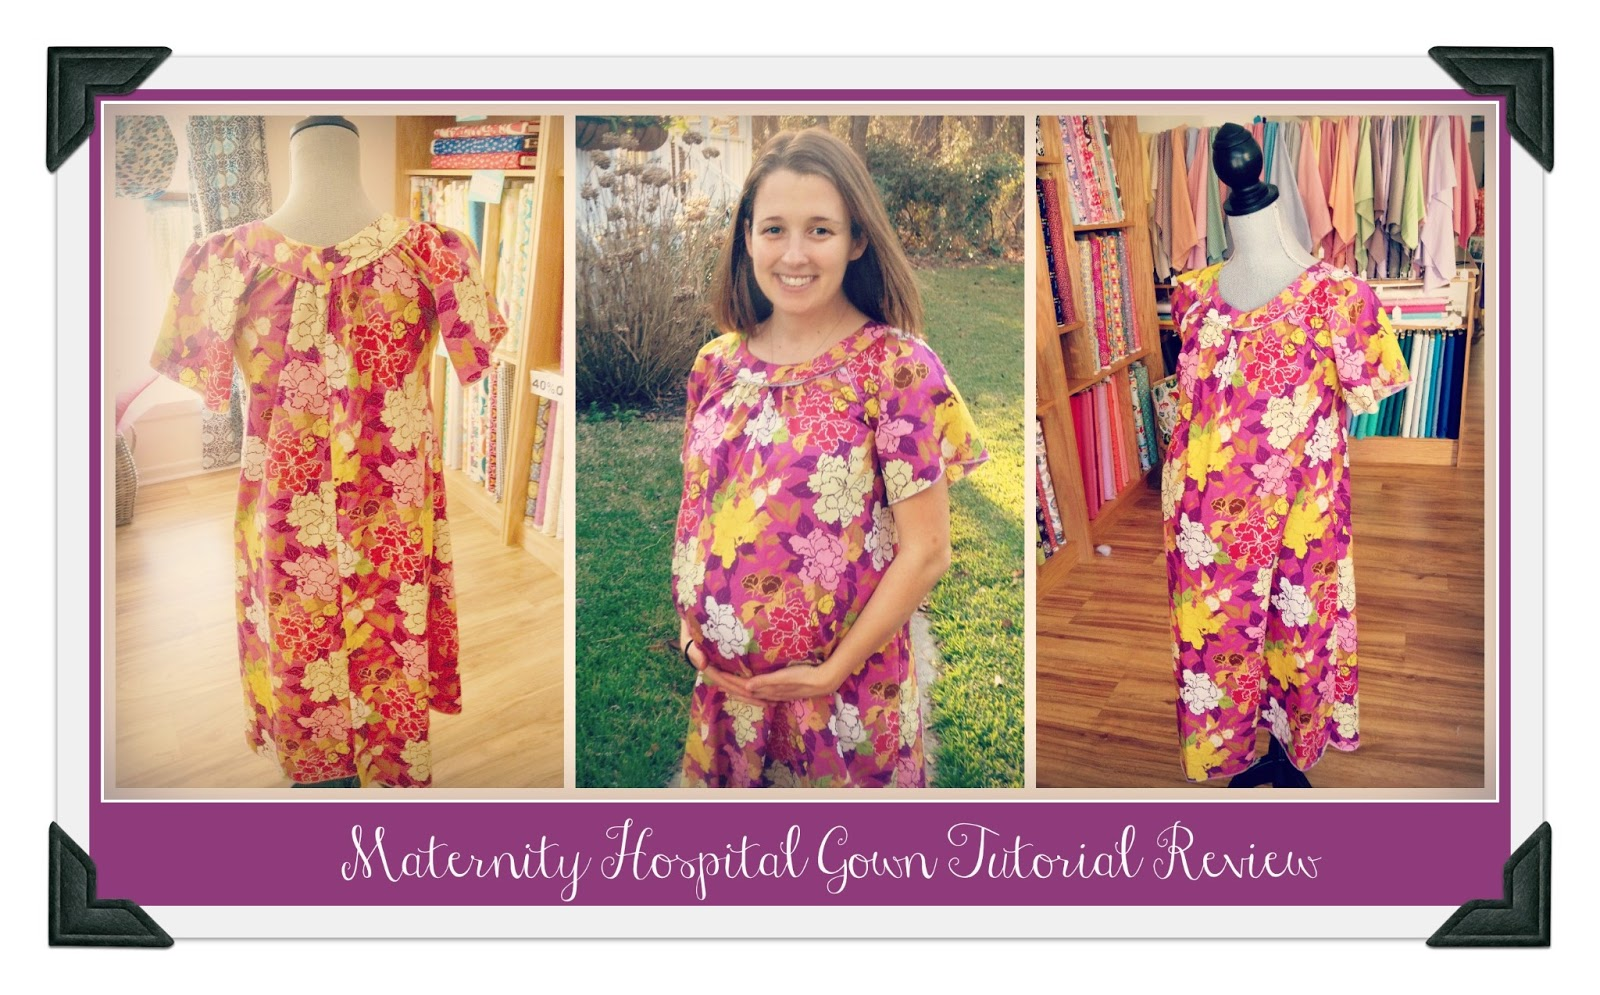 We Are Sew Happy!: Maternity Hospital Gown Tutorial Review